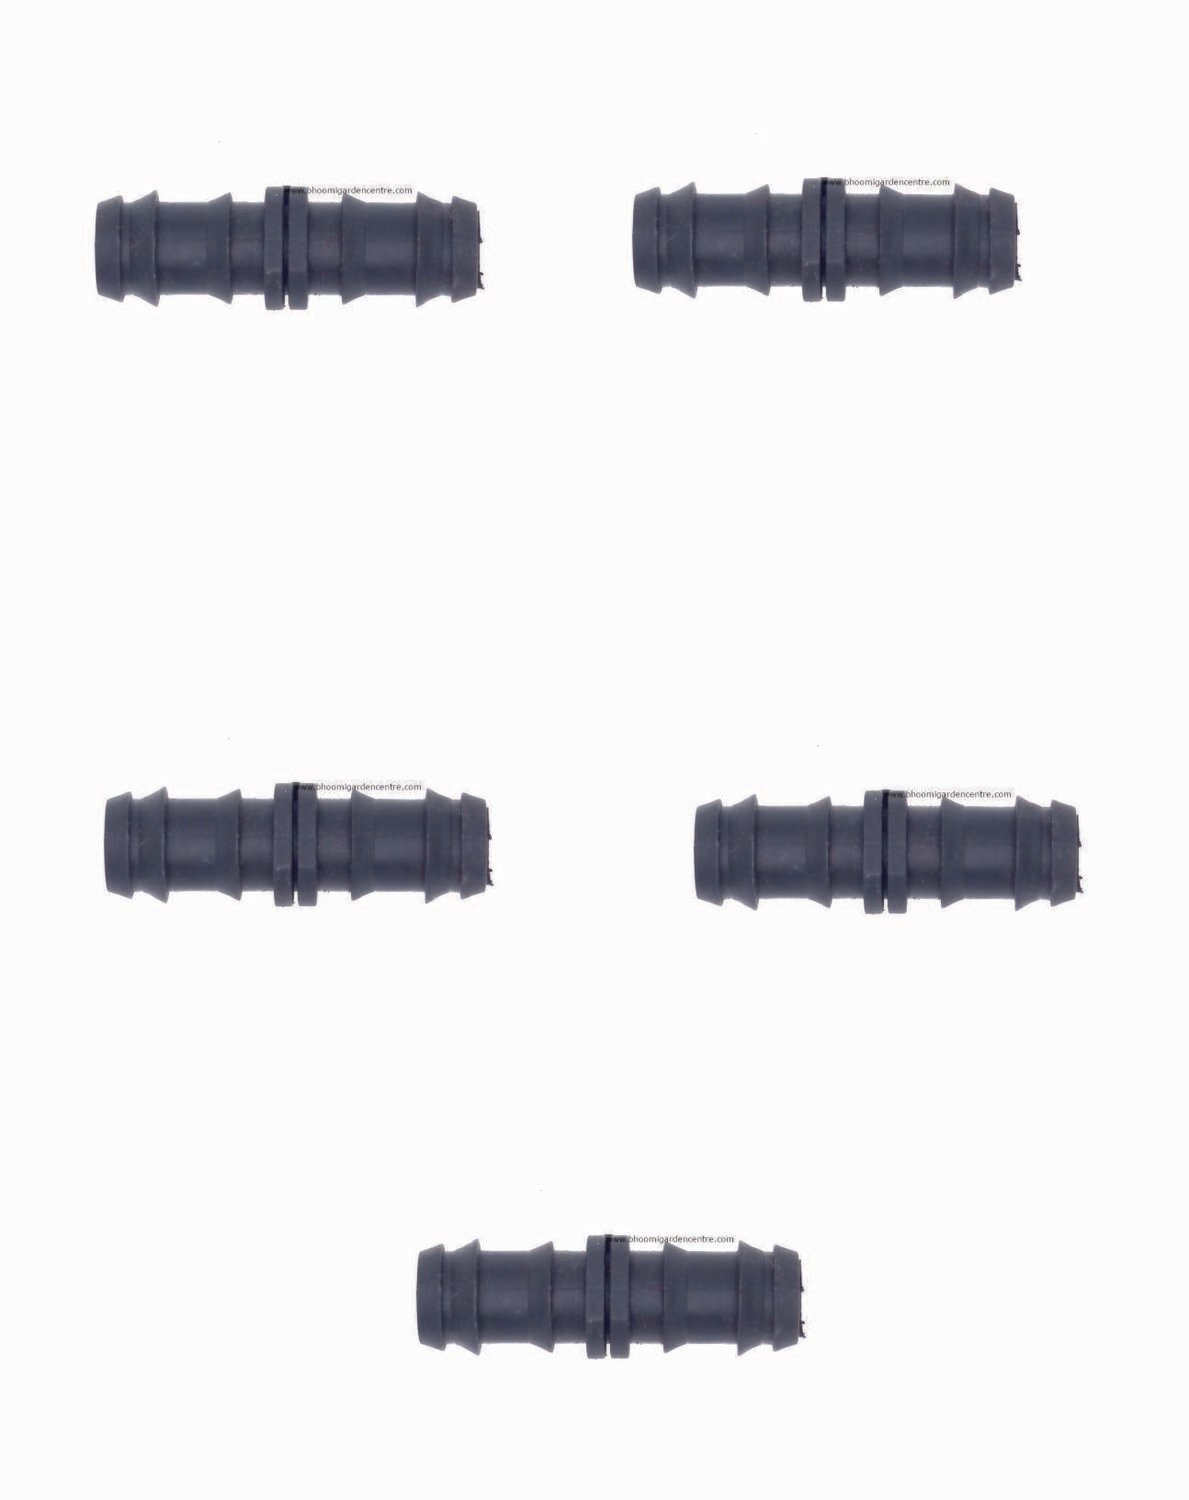 Straight connector (set of 5)